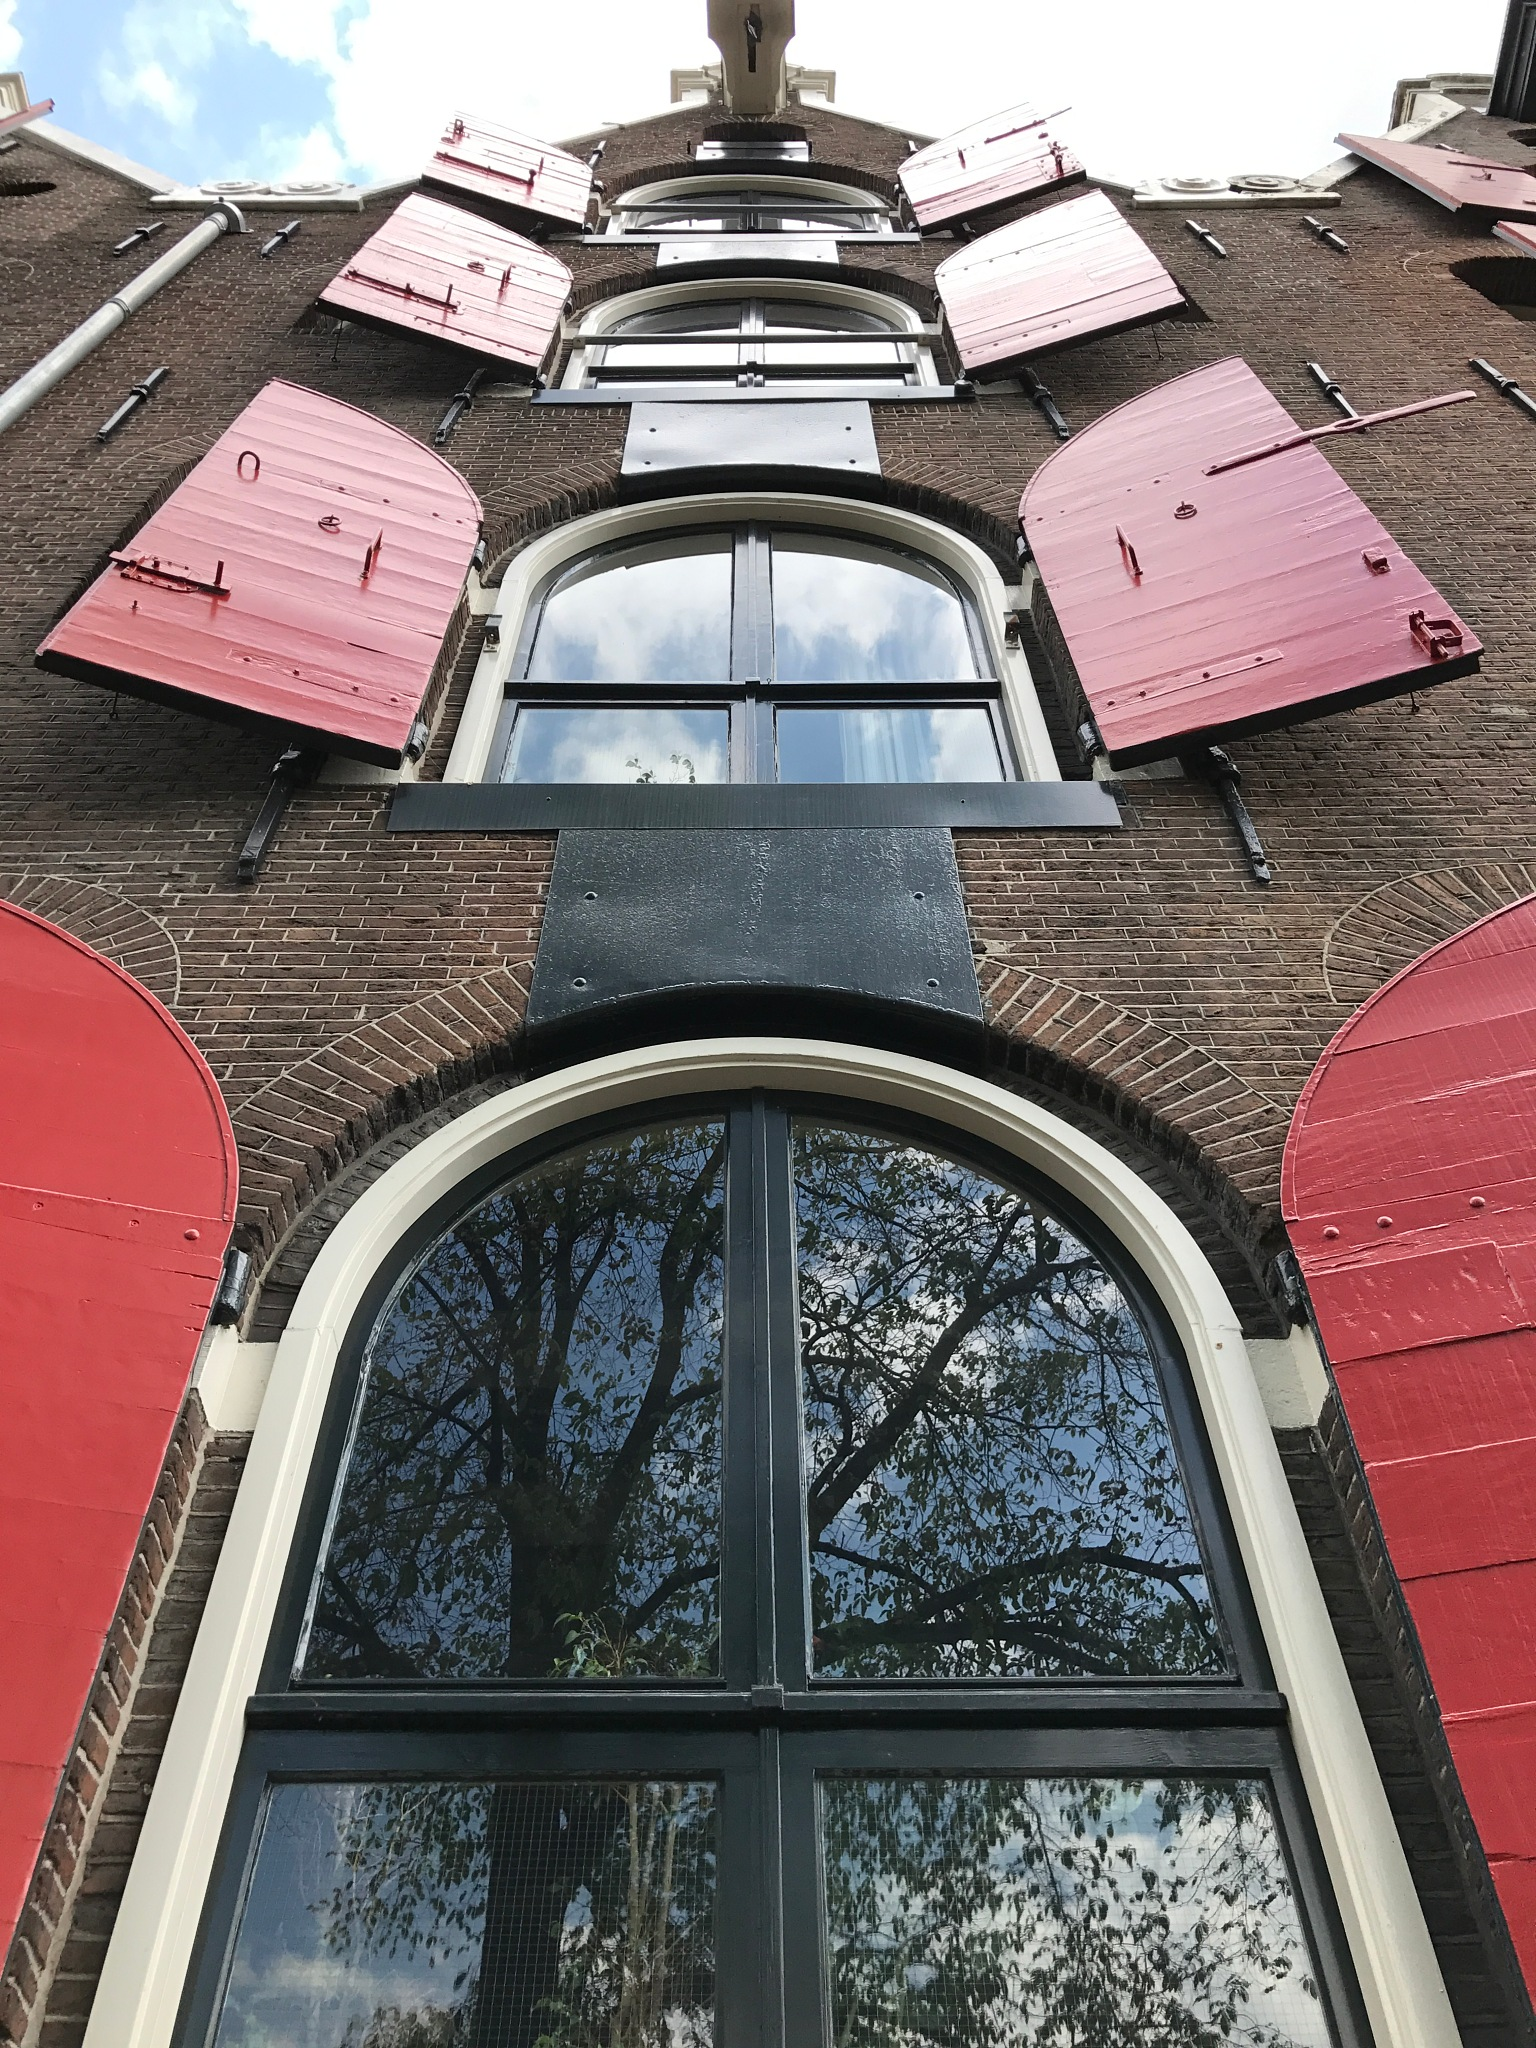 The famous window building in Amsterdam! by Adrita Ghosh